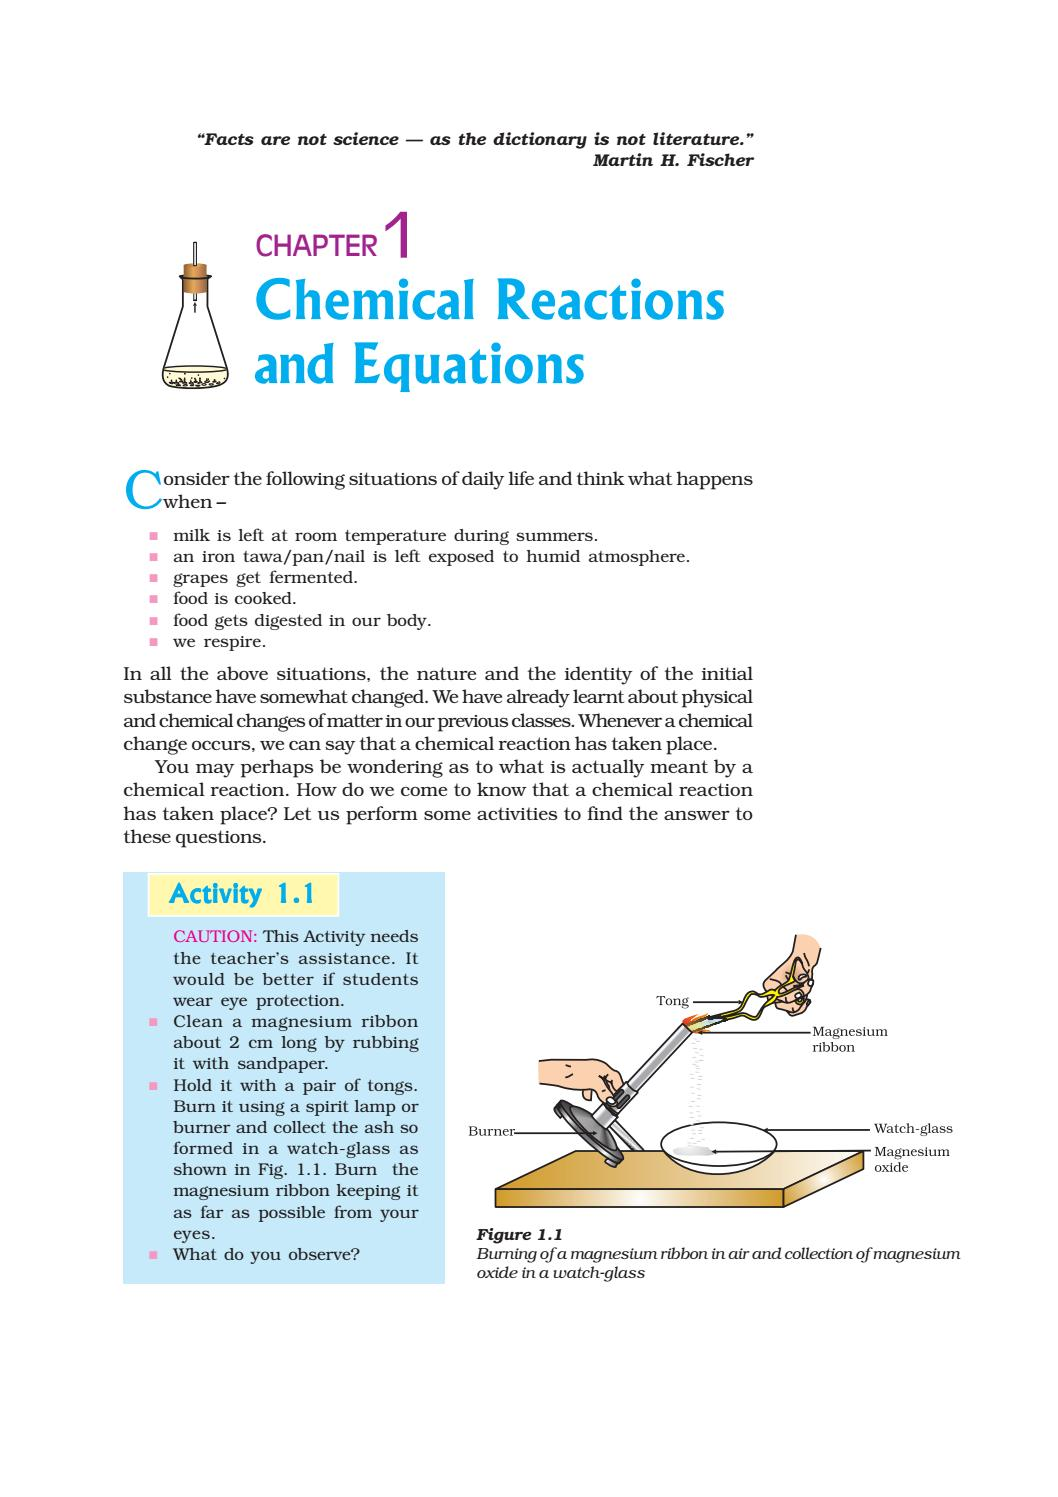 CHEMICAL REACTIONS AND EQUATIONS by Mohd Yousuf - issuu